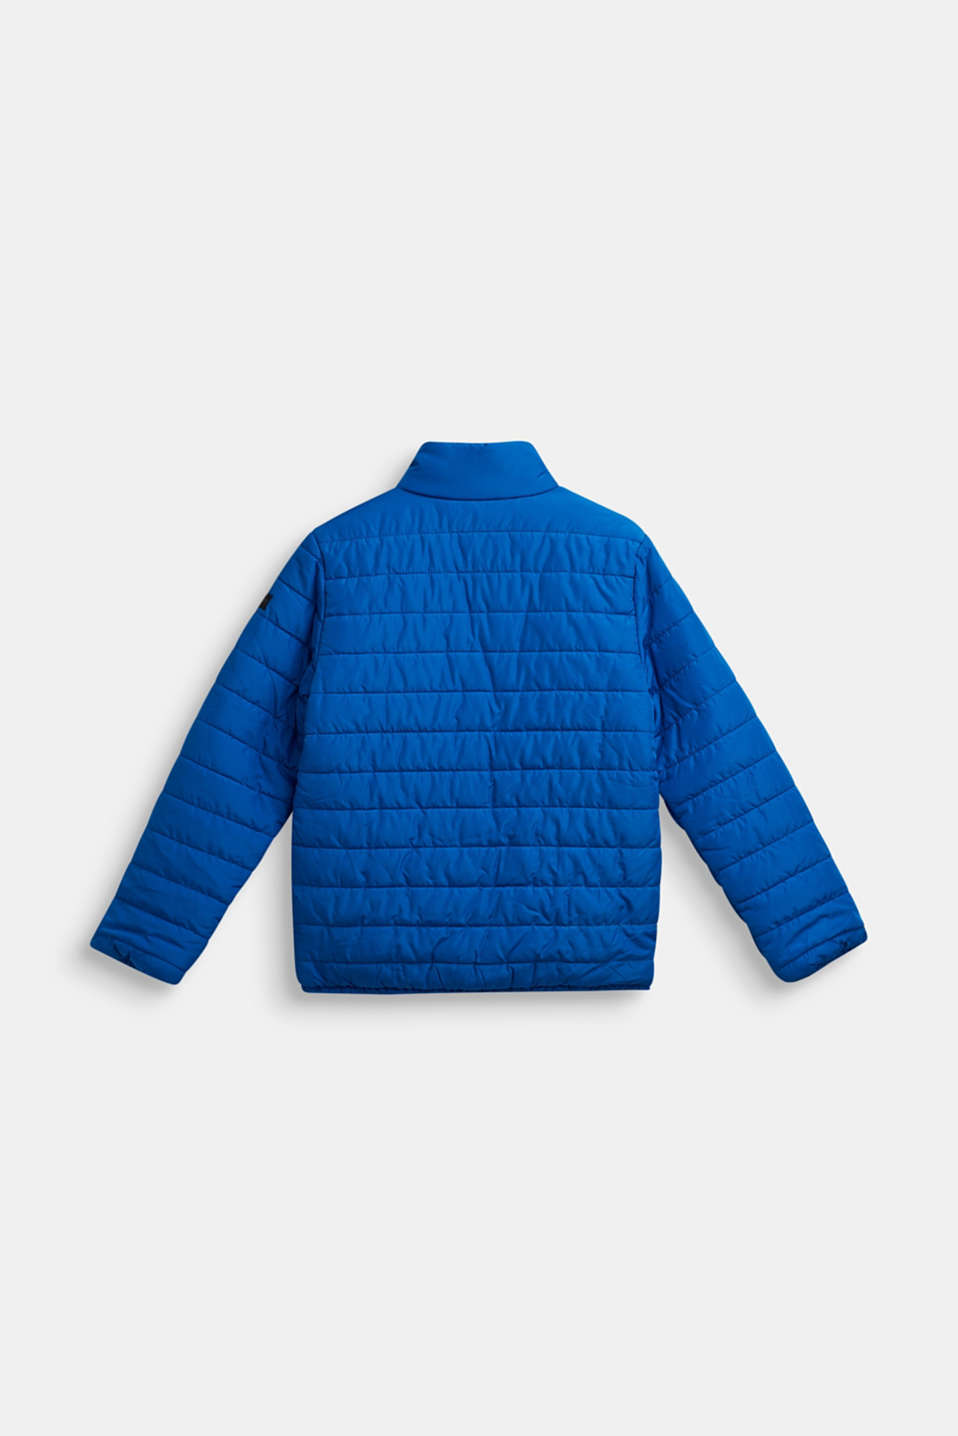 Jackets outdoor woven, LCBRIGHT BLUE, detail image number 1